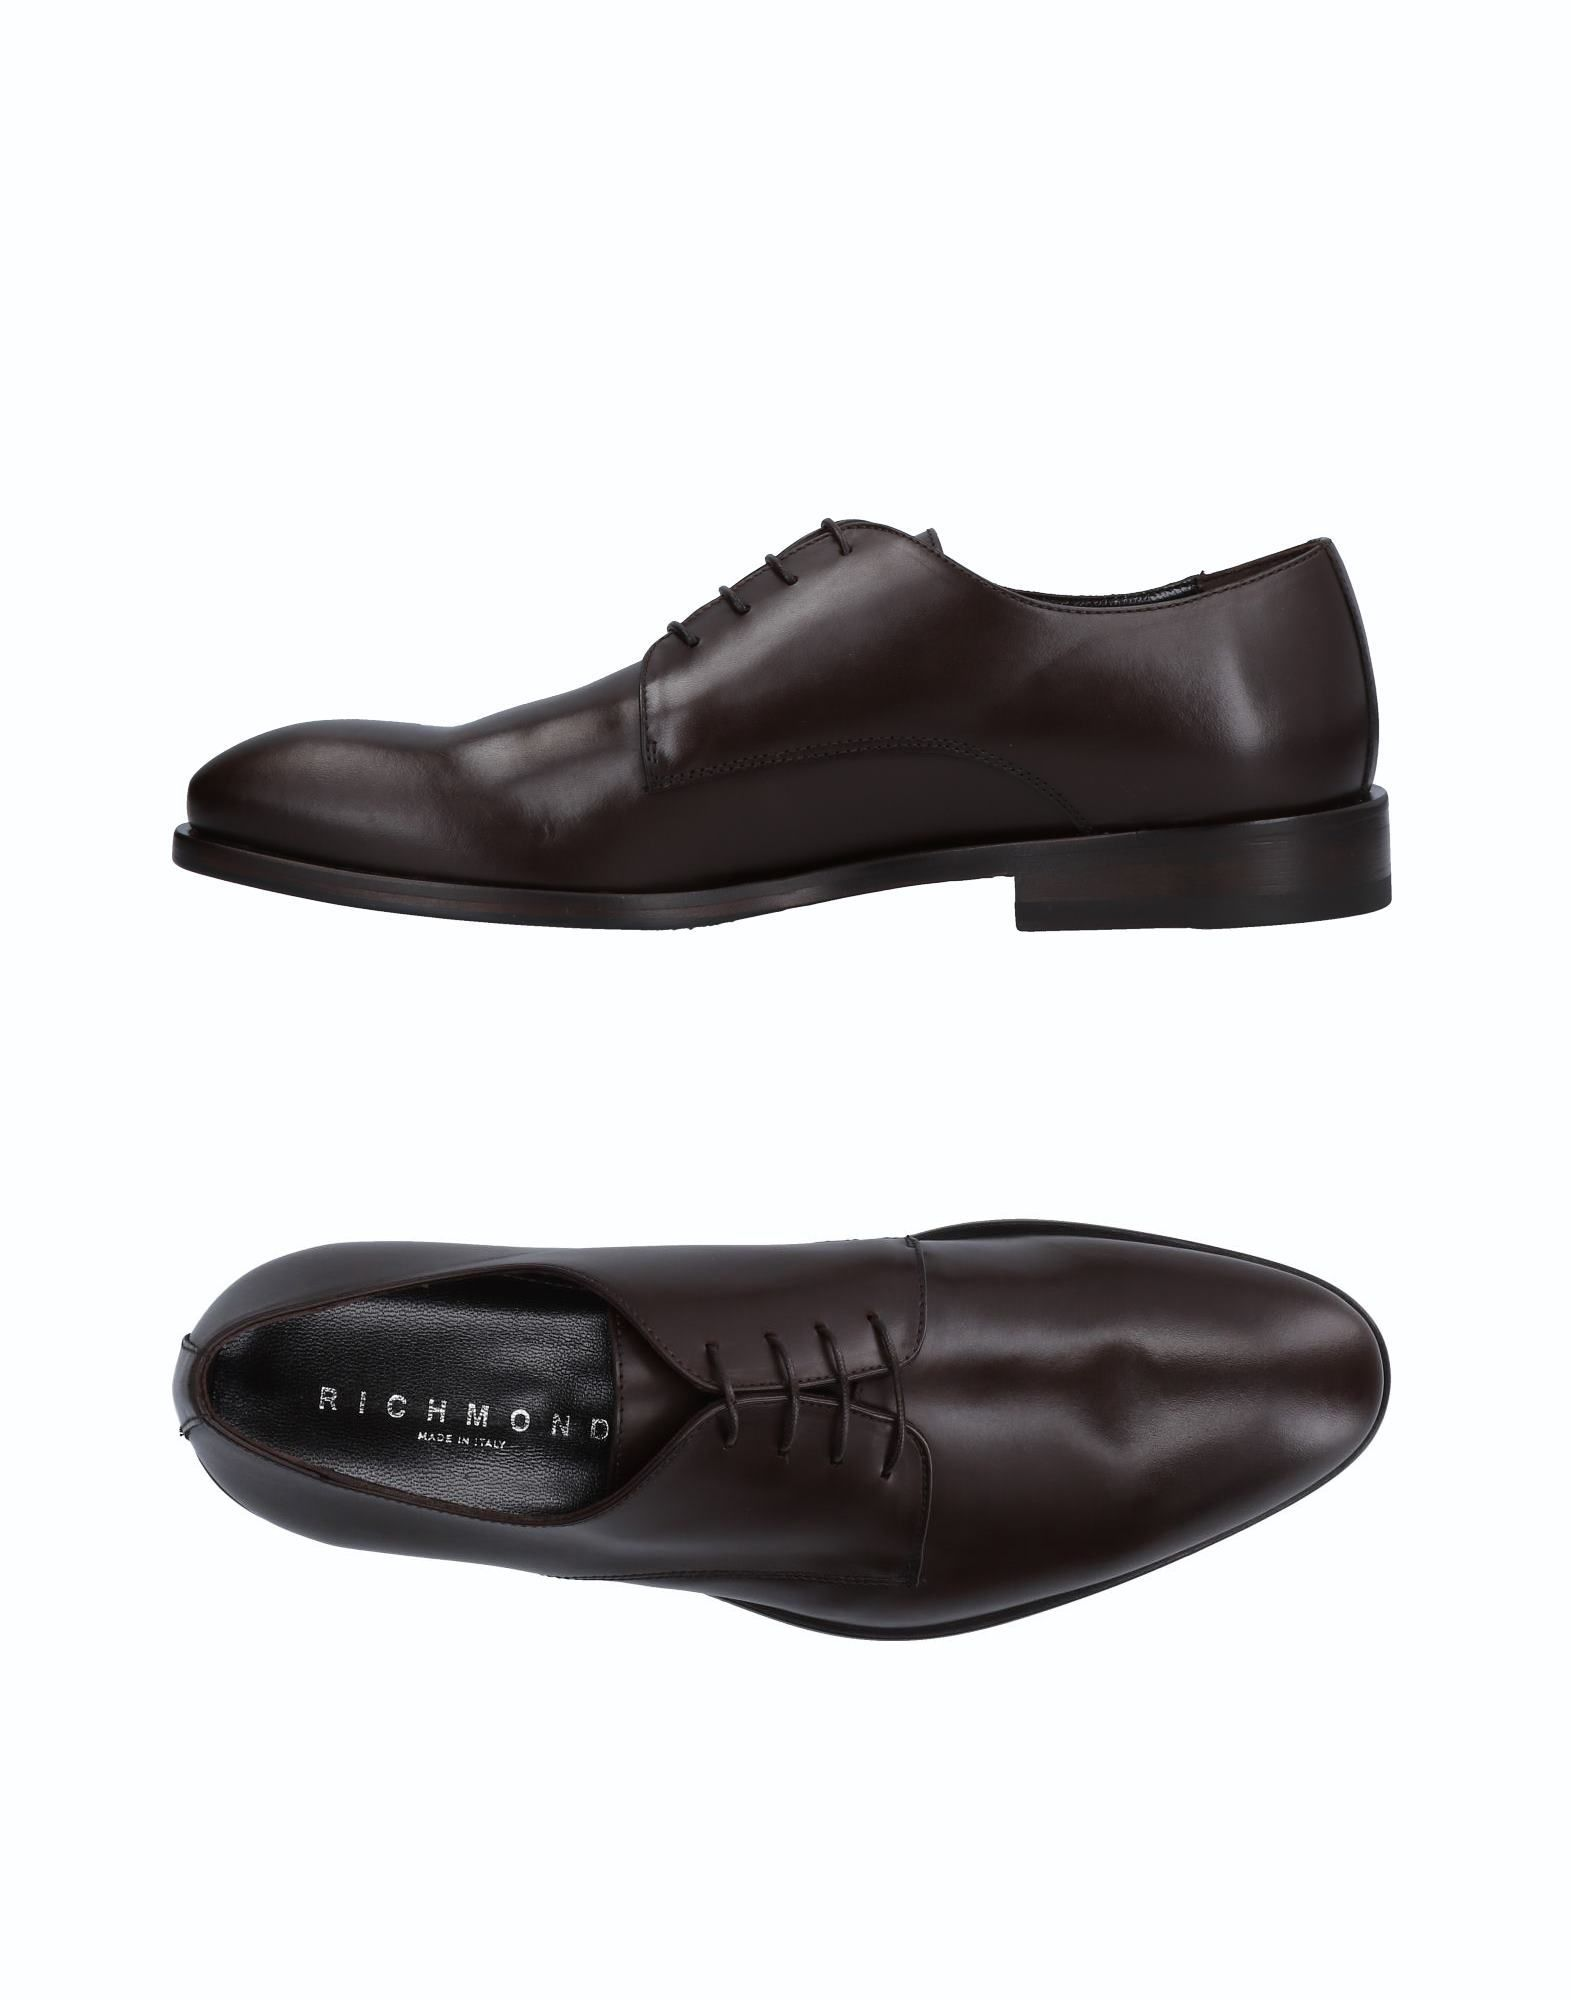 RICHMOND Laced Shoes in Dark Brown